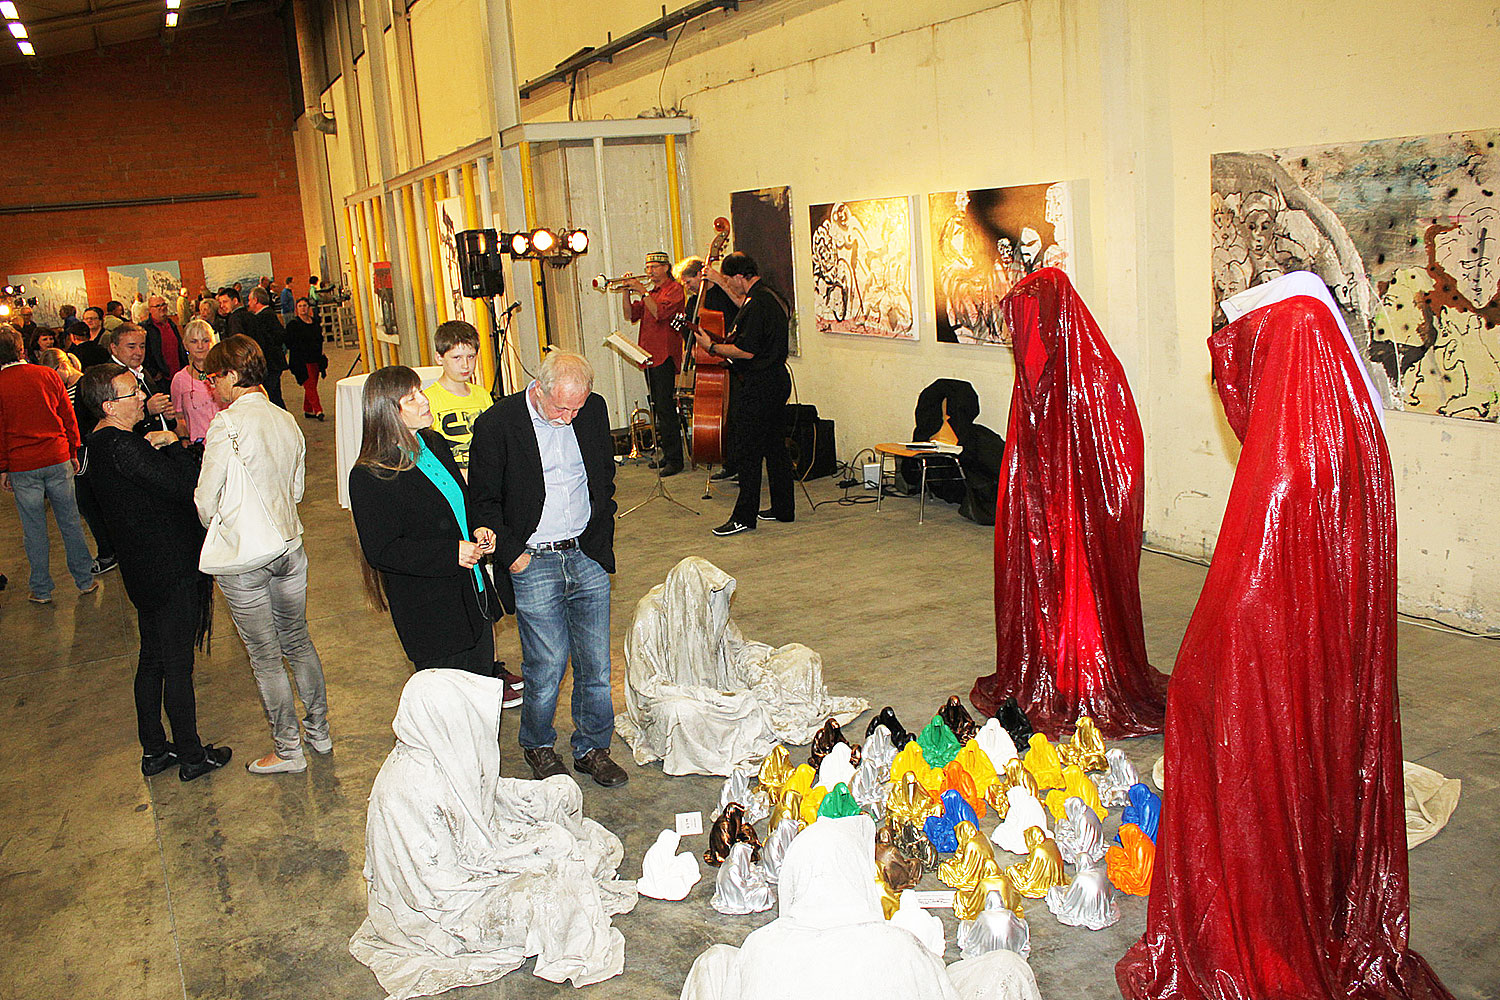 kunst in der fabrik giz-rosegg-koglhof-kunst-und-handel-guardians-waechter-manfred-kielnhofer-contemporary-art-arts-sculpture-photography-painting-1643